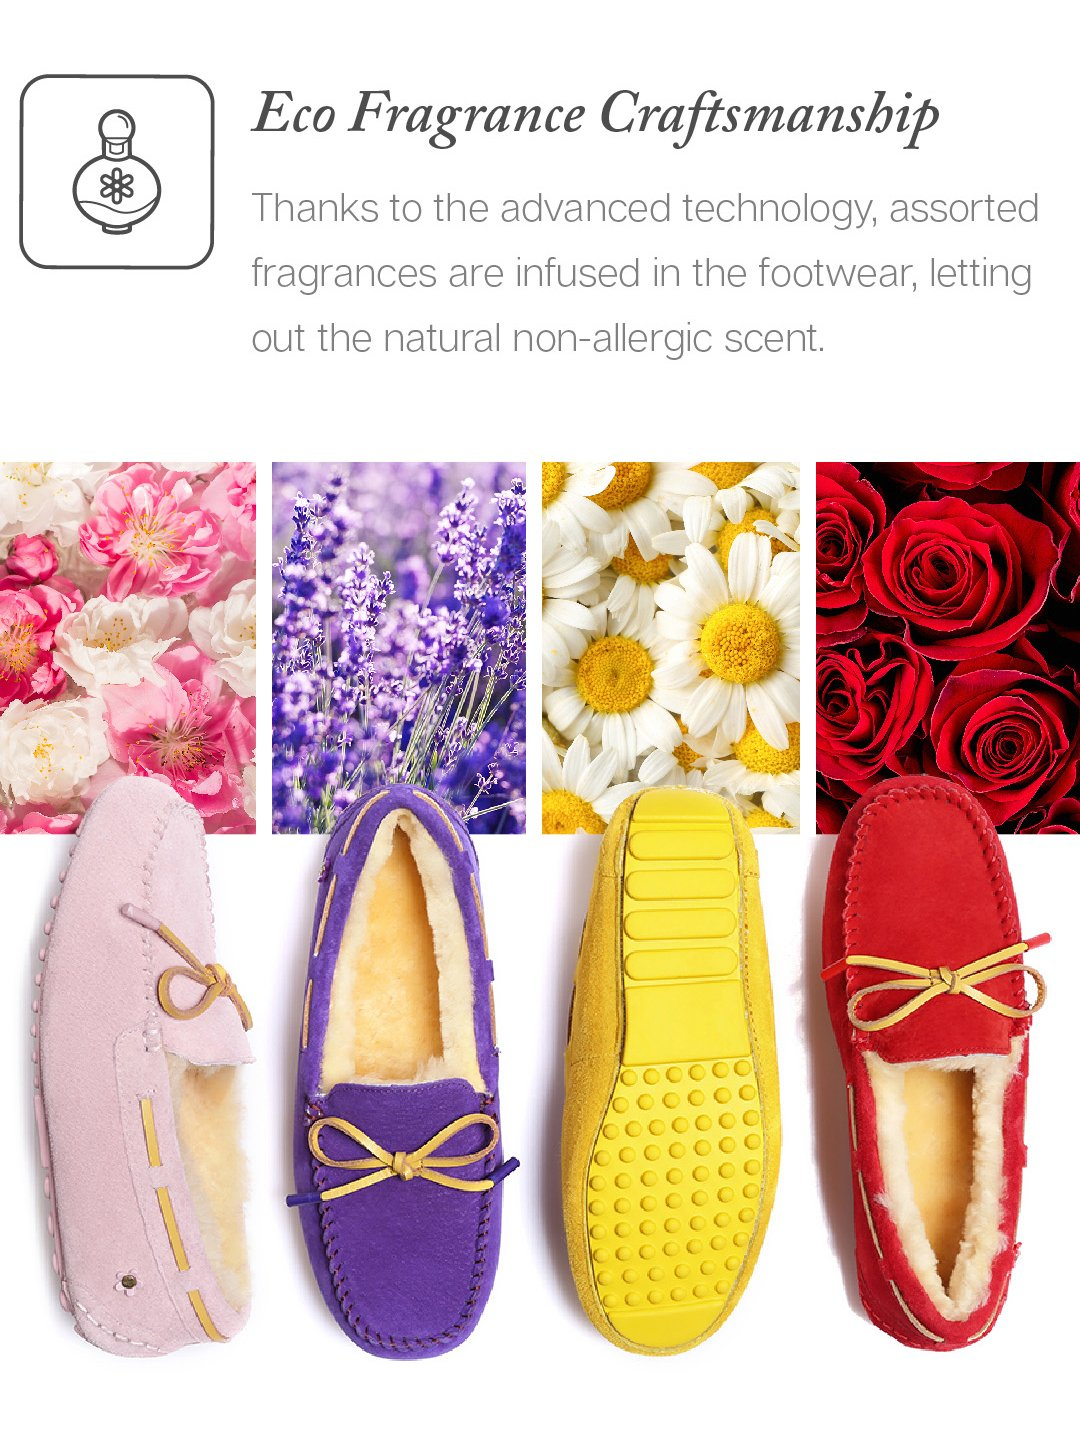 You can get pink, purple, yellow and red EVER UGG MIRACLE MOCCASIN WITH SPECIAL FLOWER FRAGRANCE